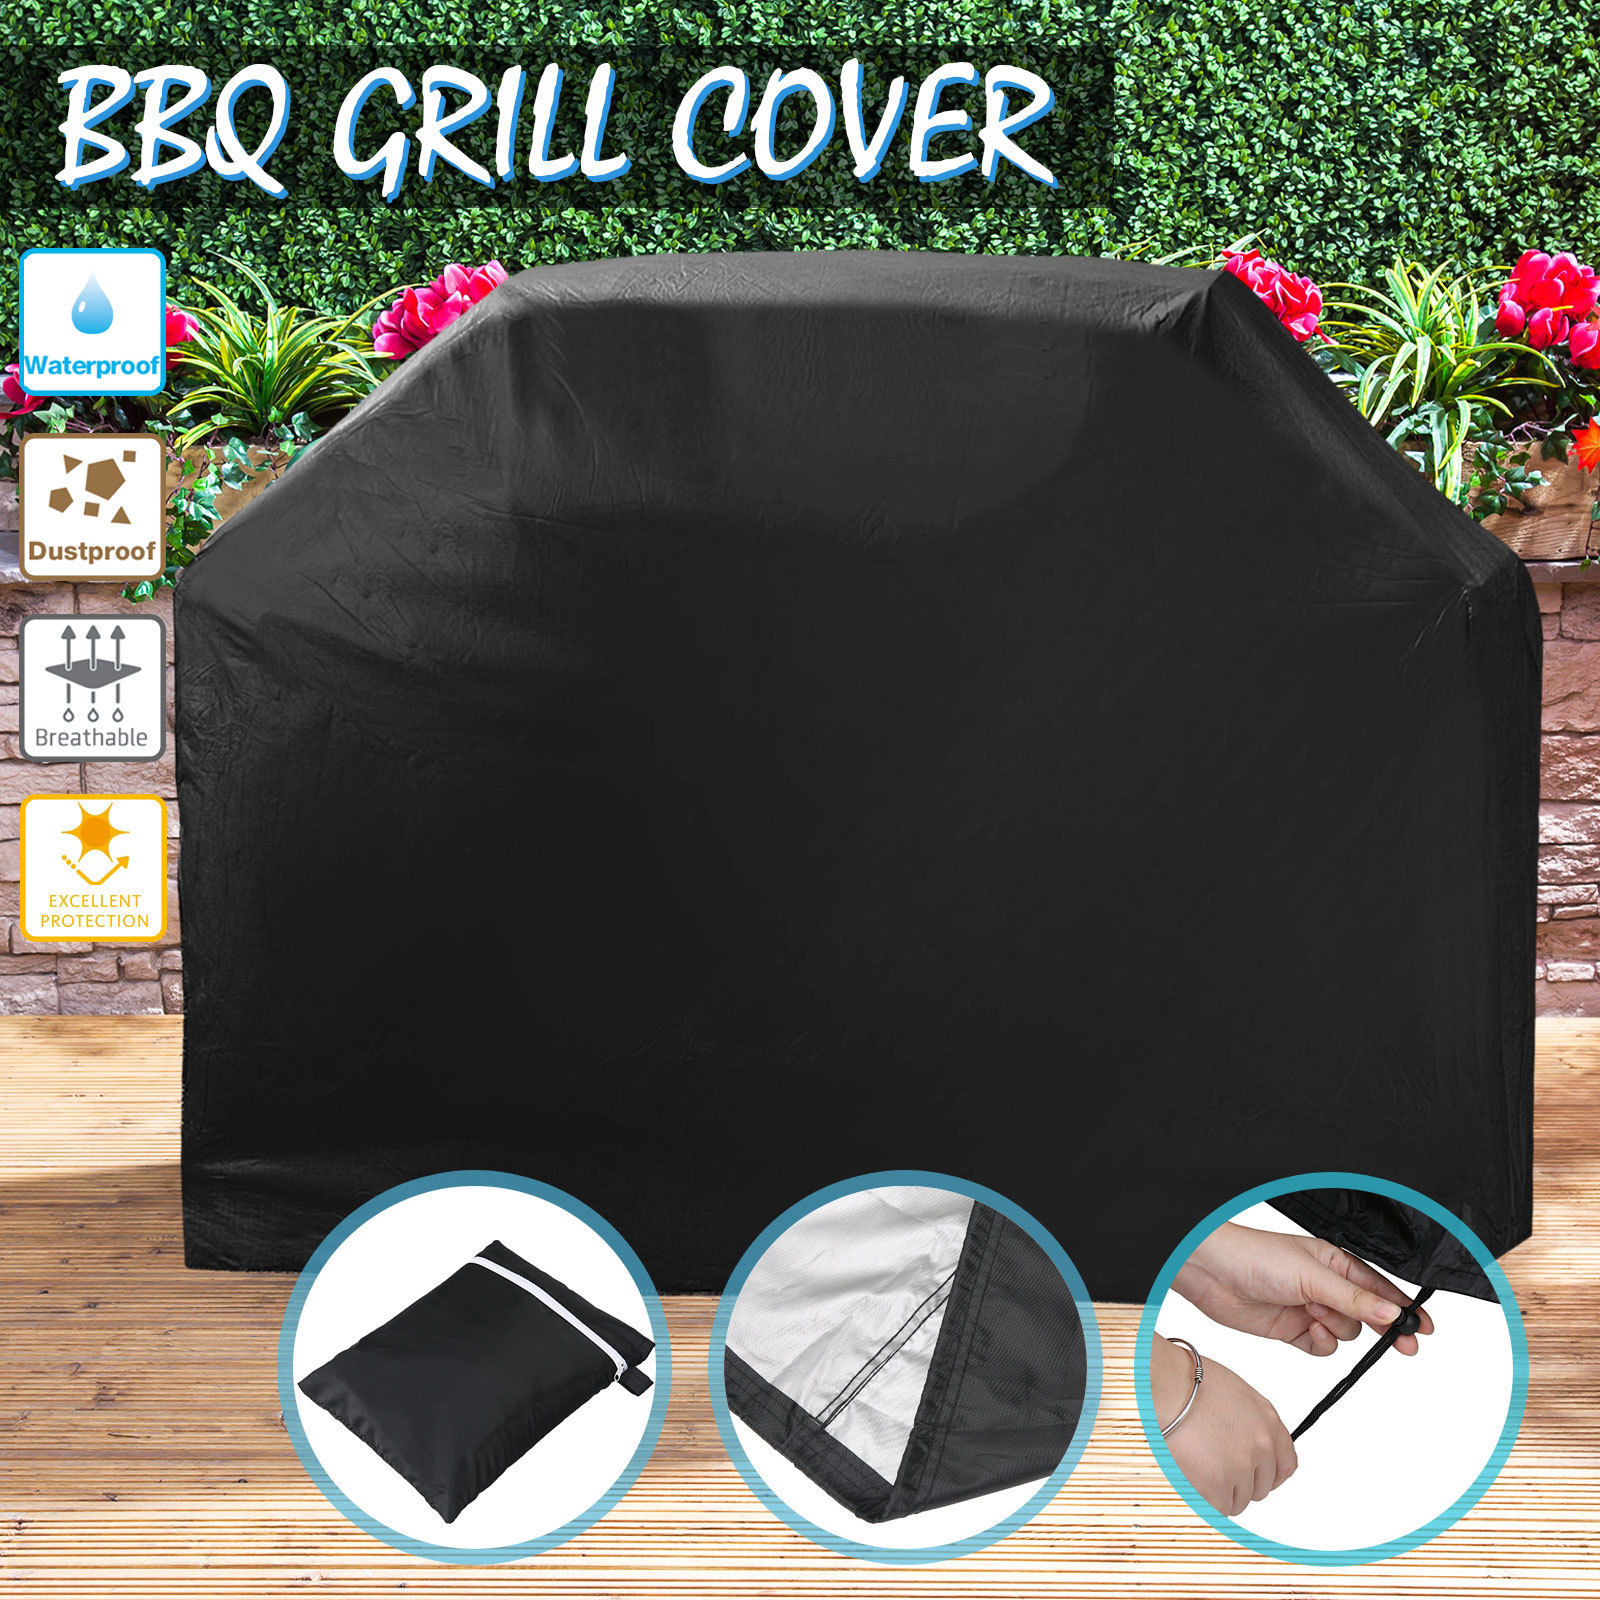 Additional Massive BBQ Cowl Heavy Obligation Waterproof Barbecue Garden Grill Protector 170